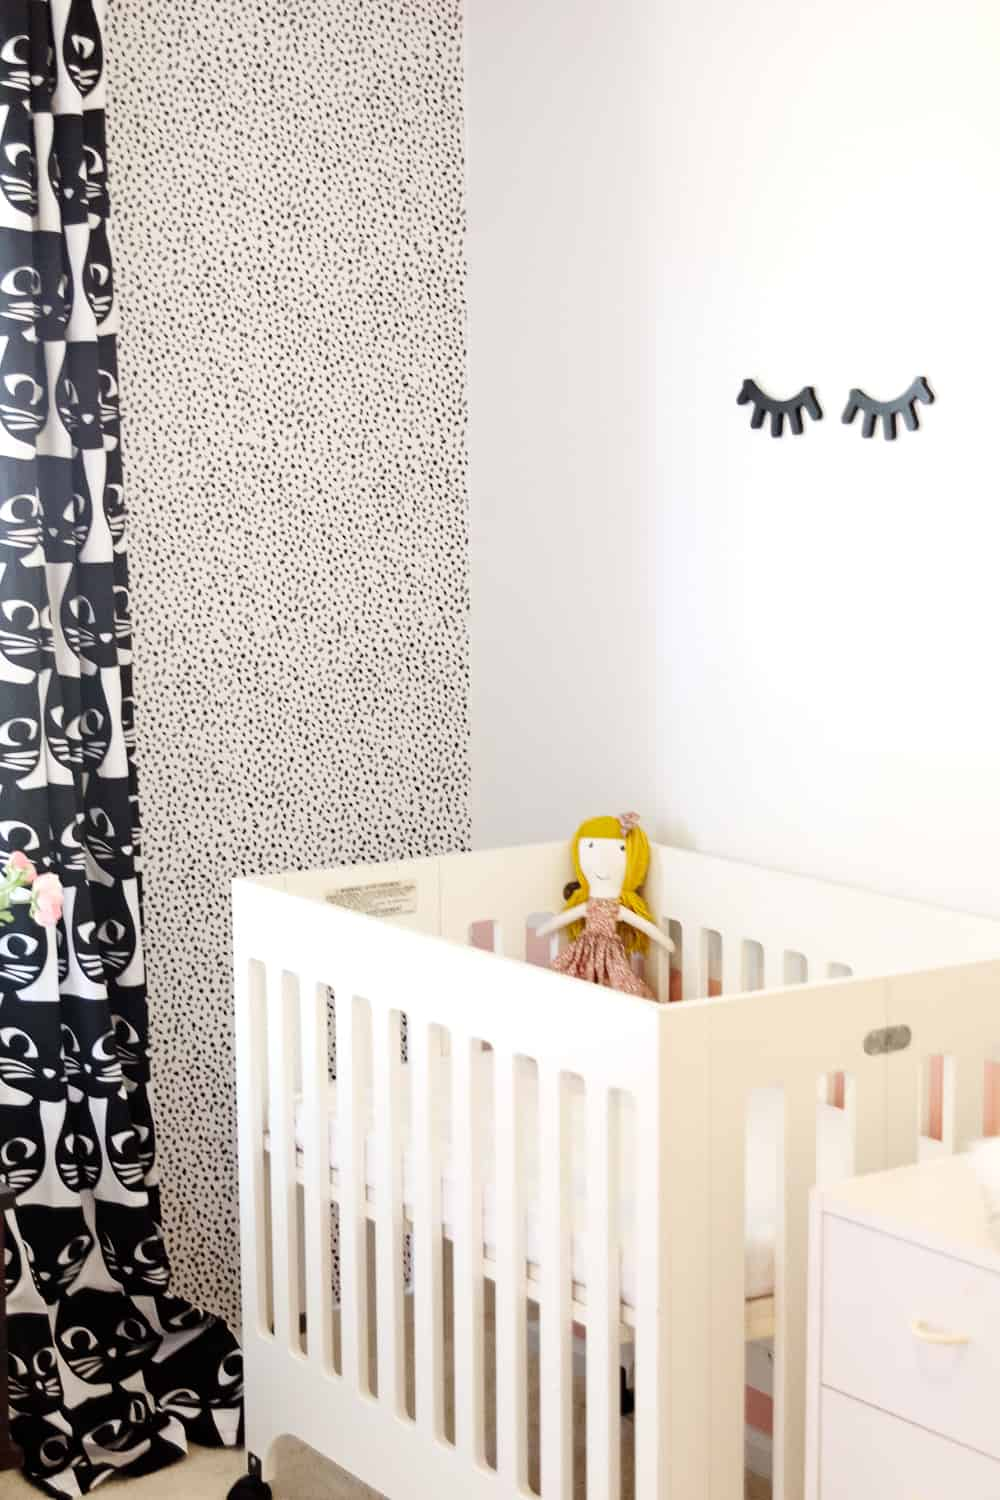 diy floral monogram levana baby monitor review see kate sew. Black Bedroom Furniture Sets. Home Design Ideas